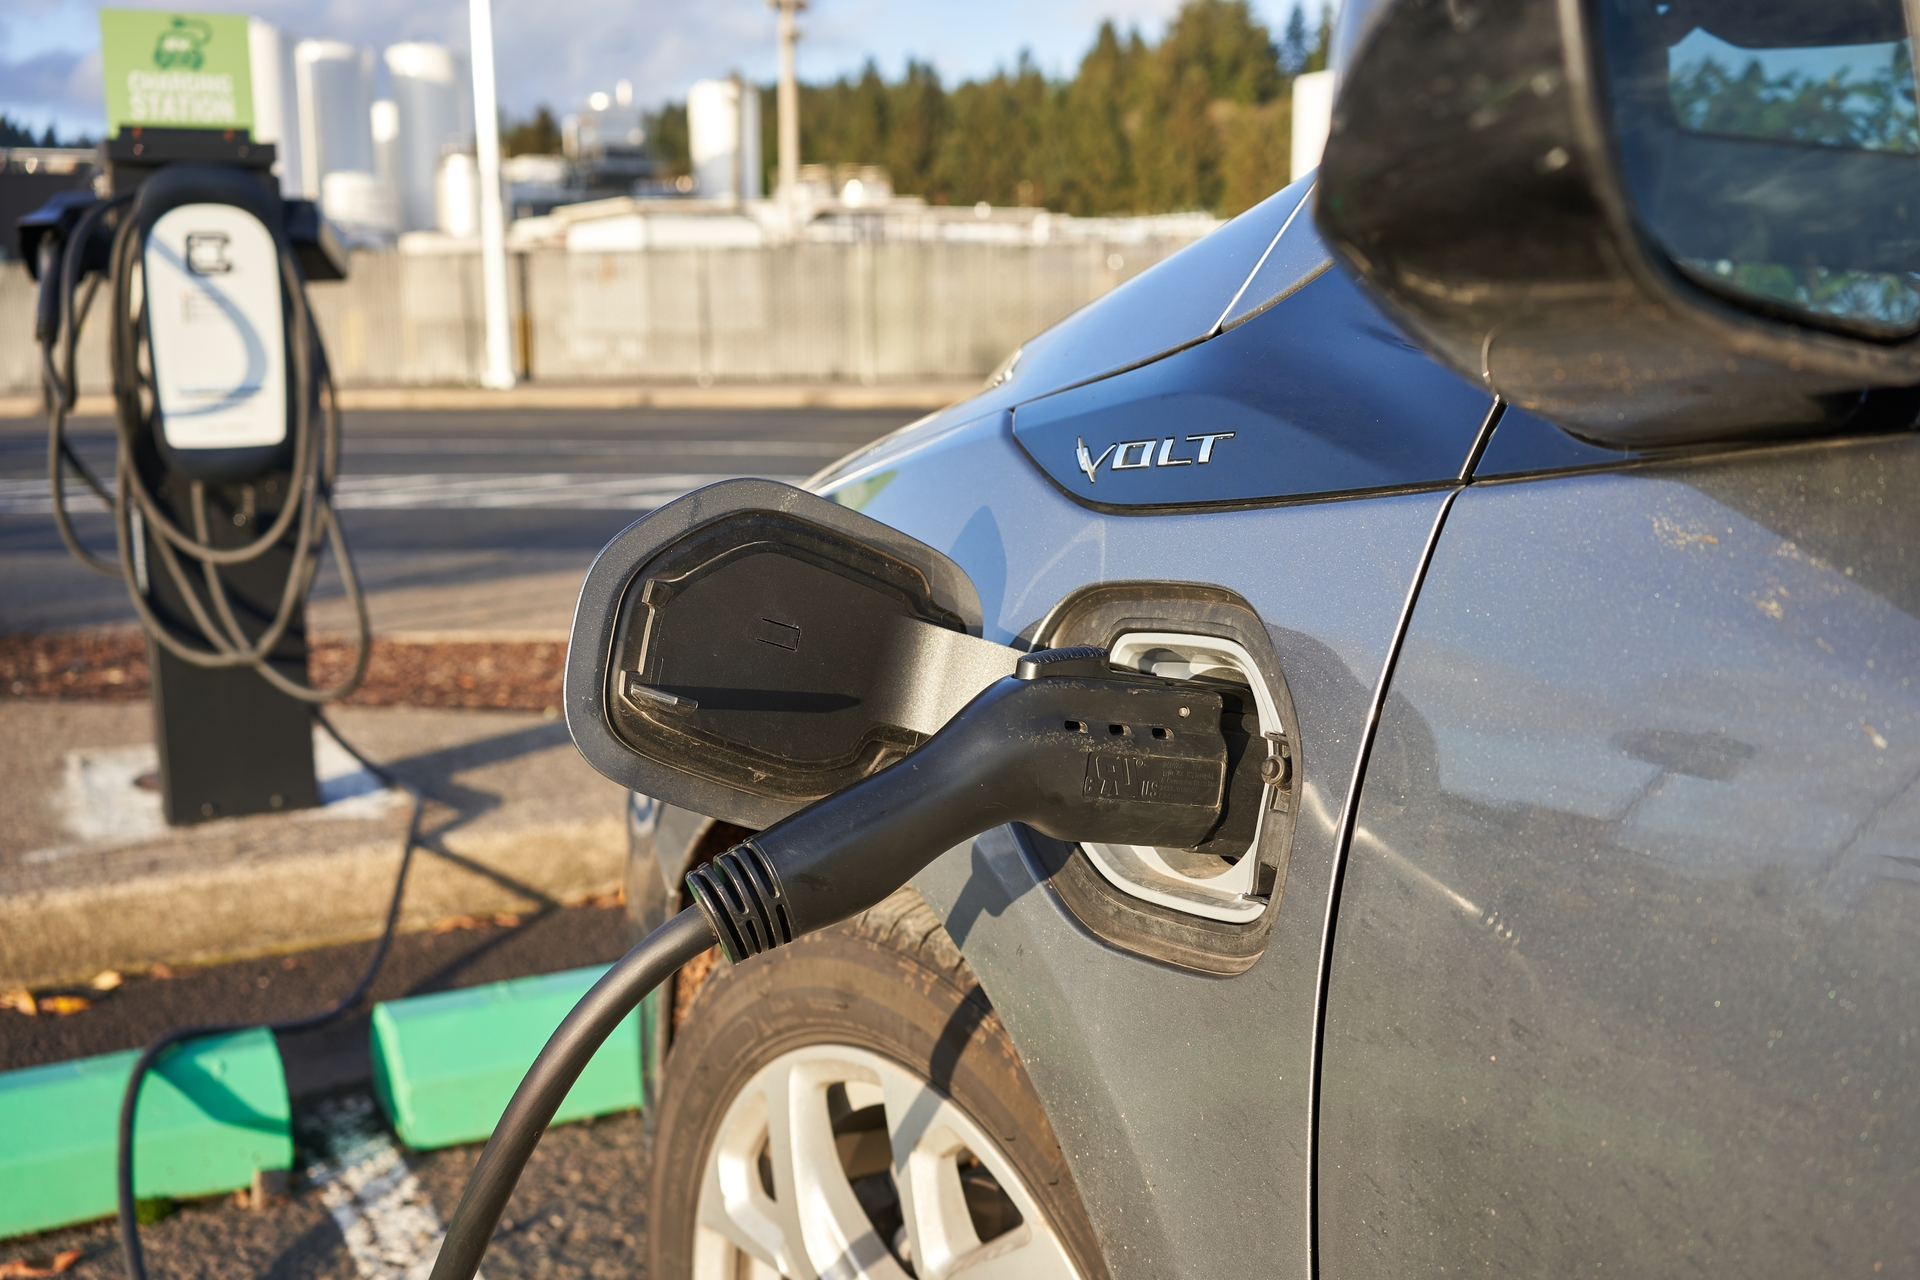 EV drivers who are customers of SCE, including those who purchase a pre-owned car, can also receive a $1,000 Clean Fuel Reward rebate.